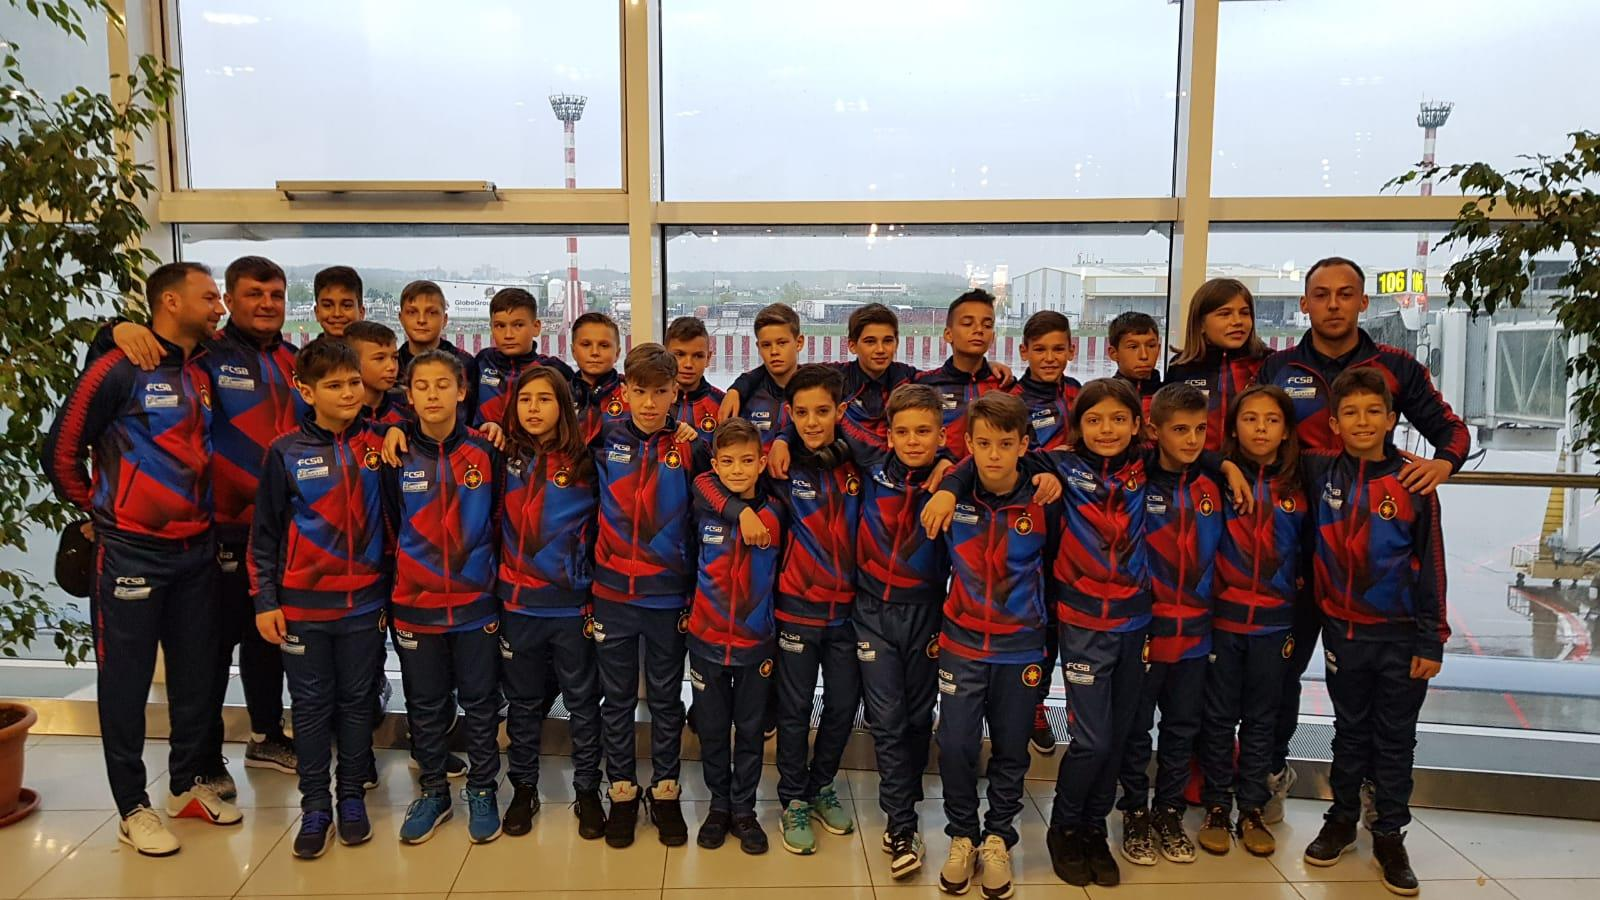 FCSB U12 and FCSB U11, special guests at Mundialito 2019!